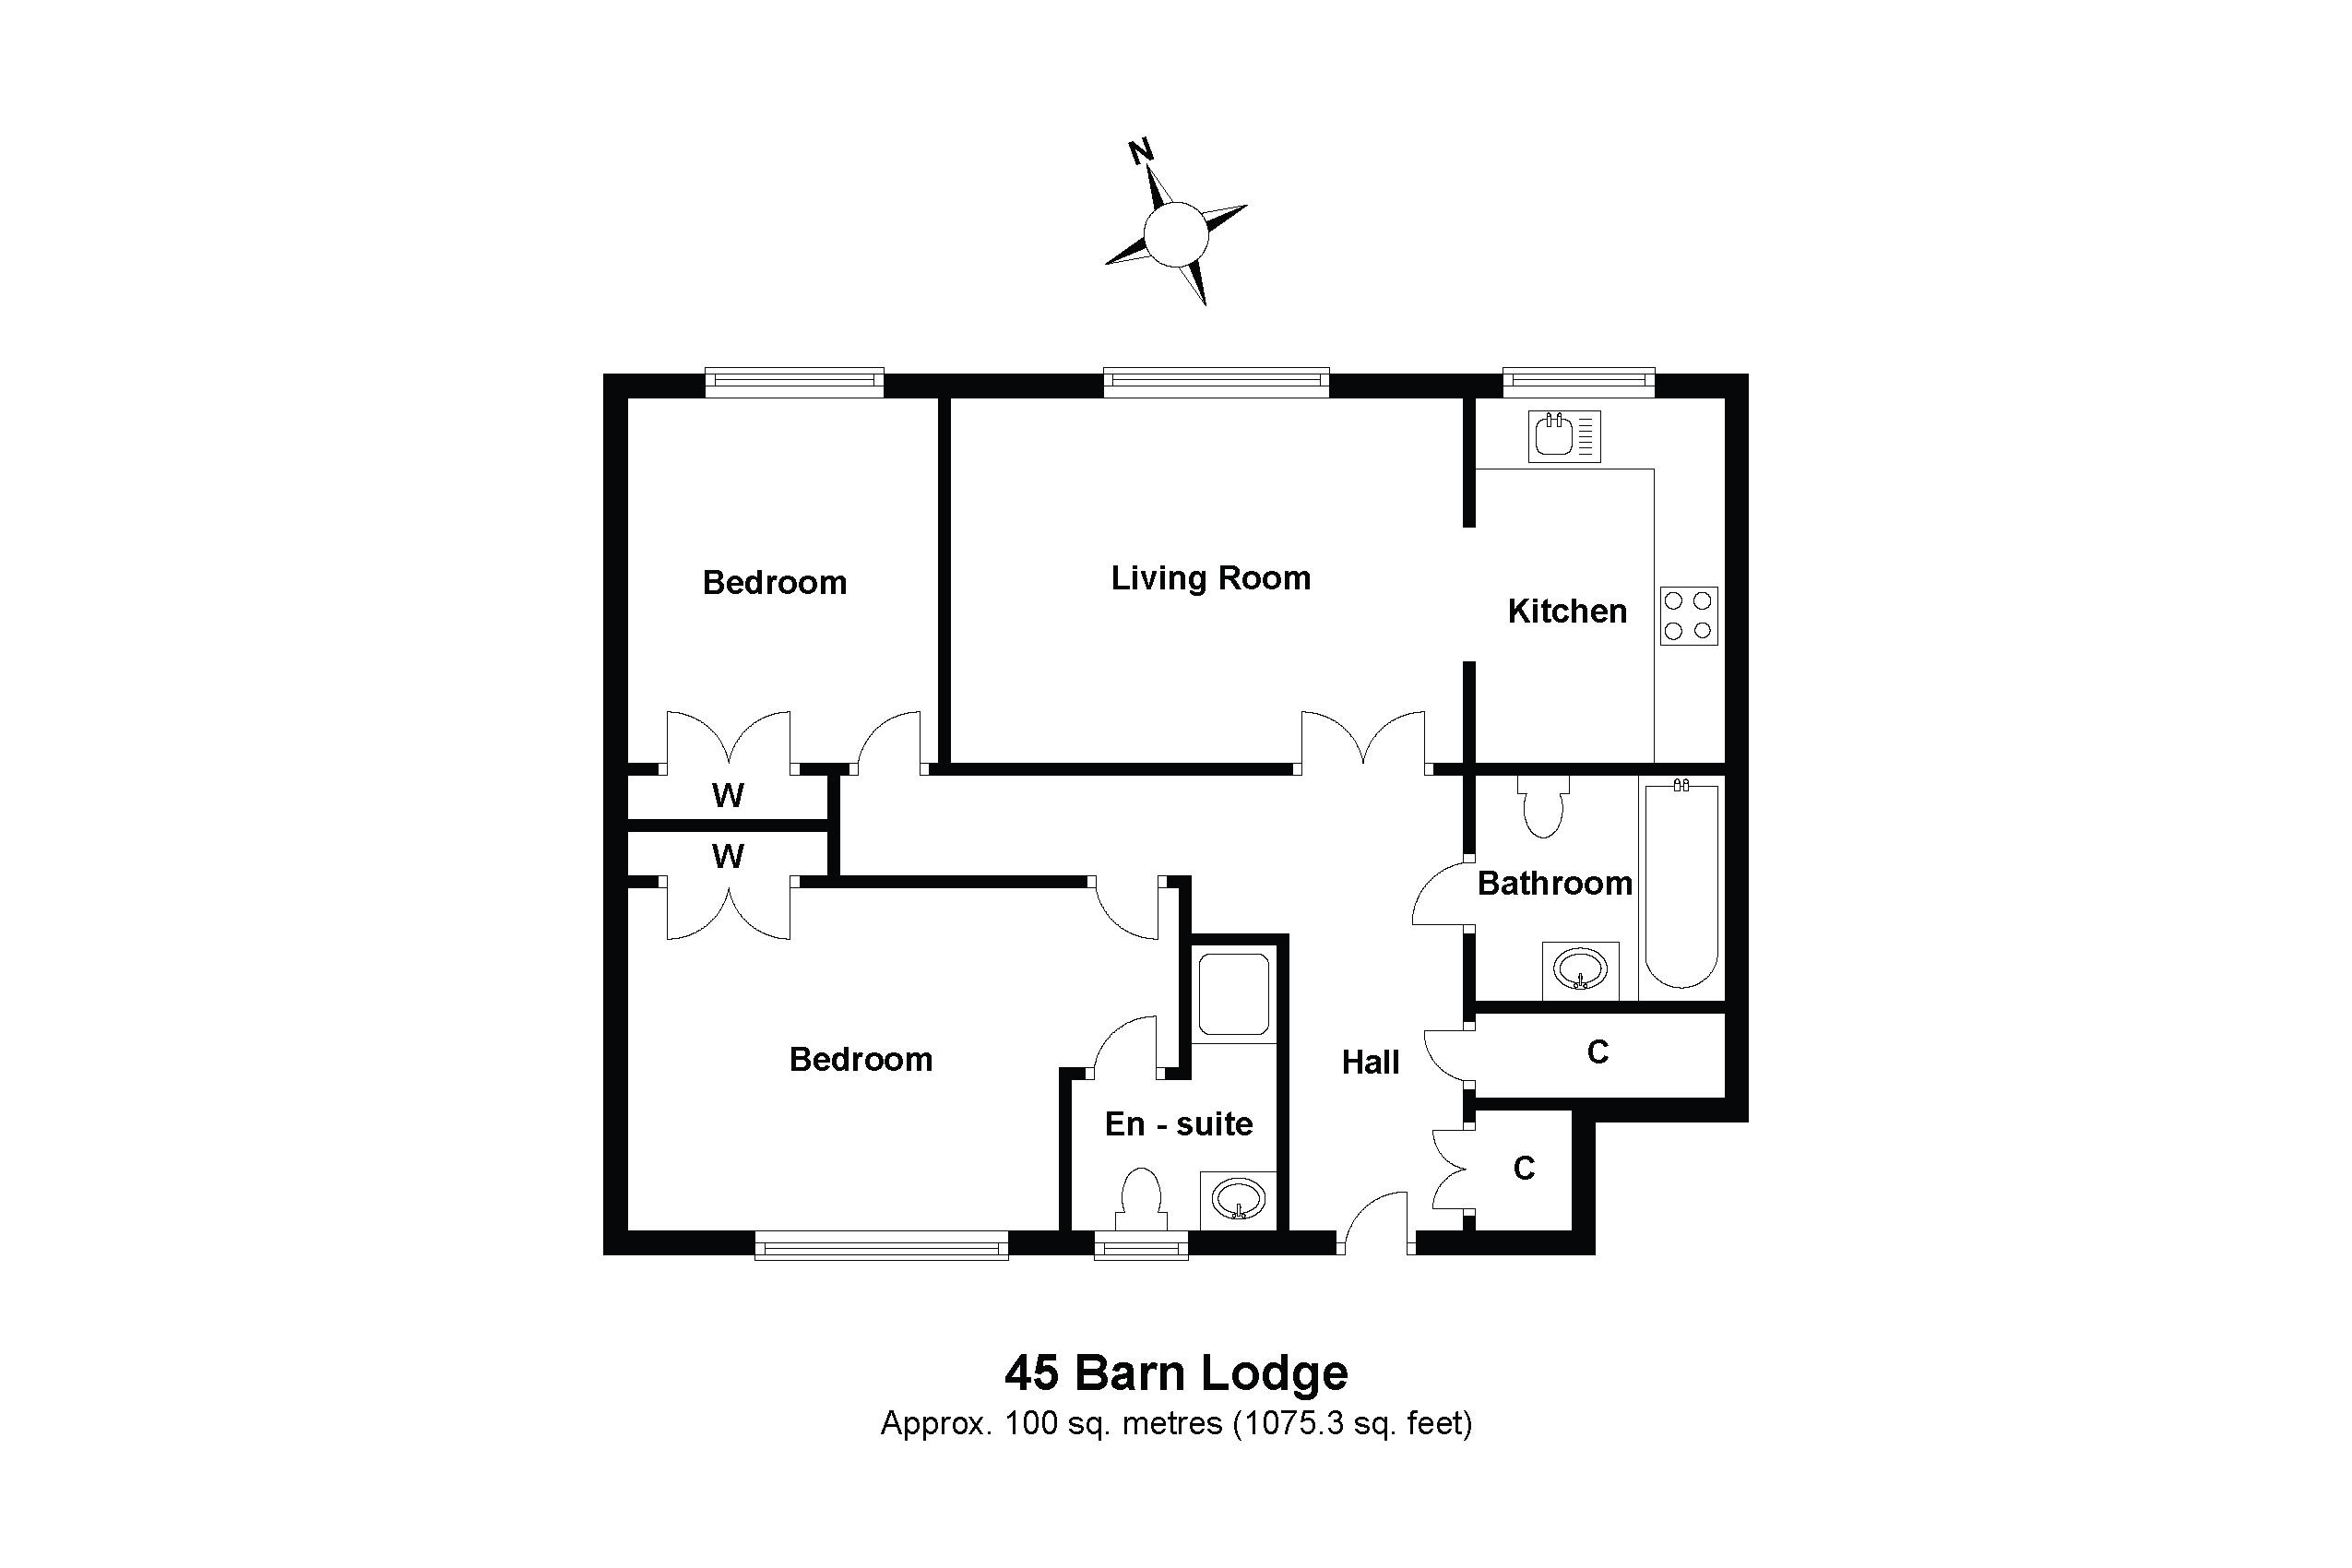 45 Barn Lodge Floorplan